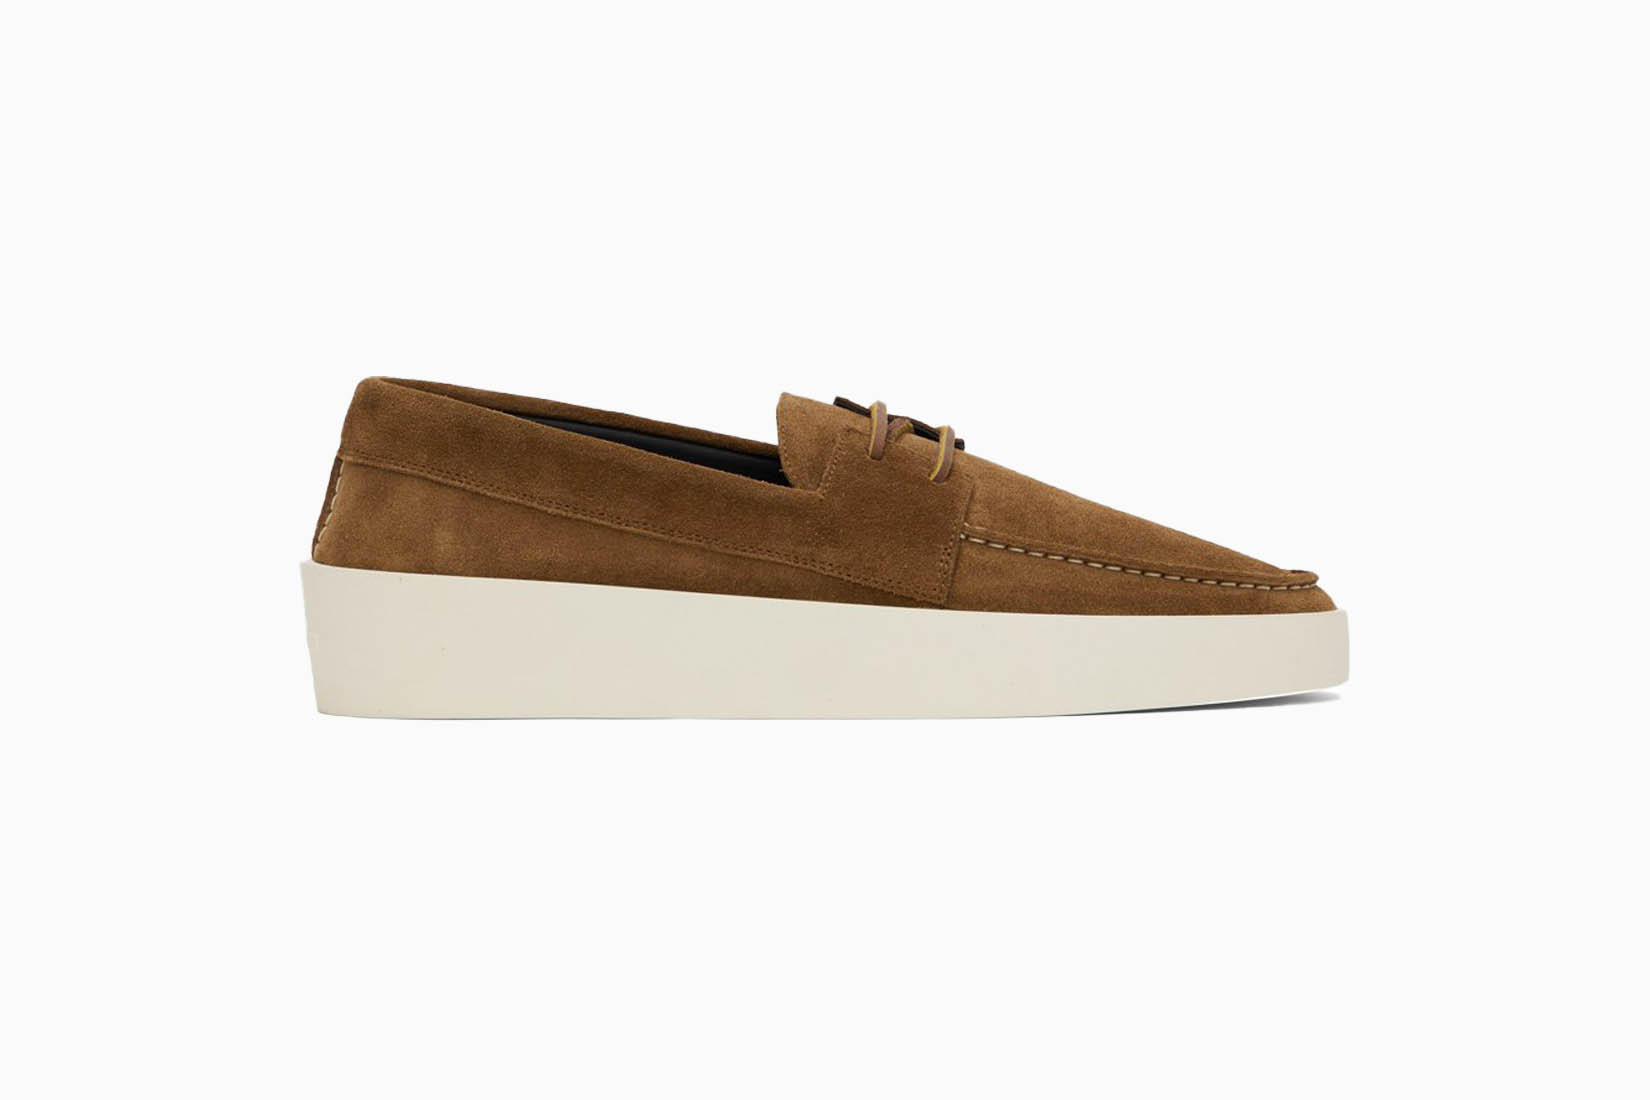 best casual shoes men fear of god suede boat shoes review Luxe Digital